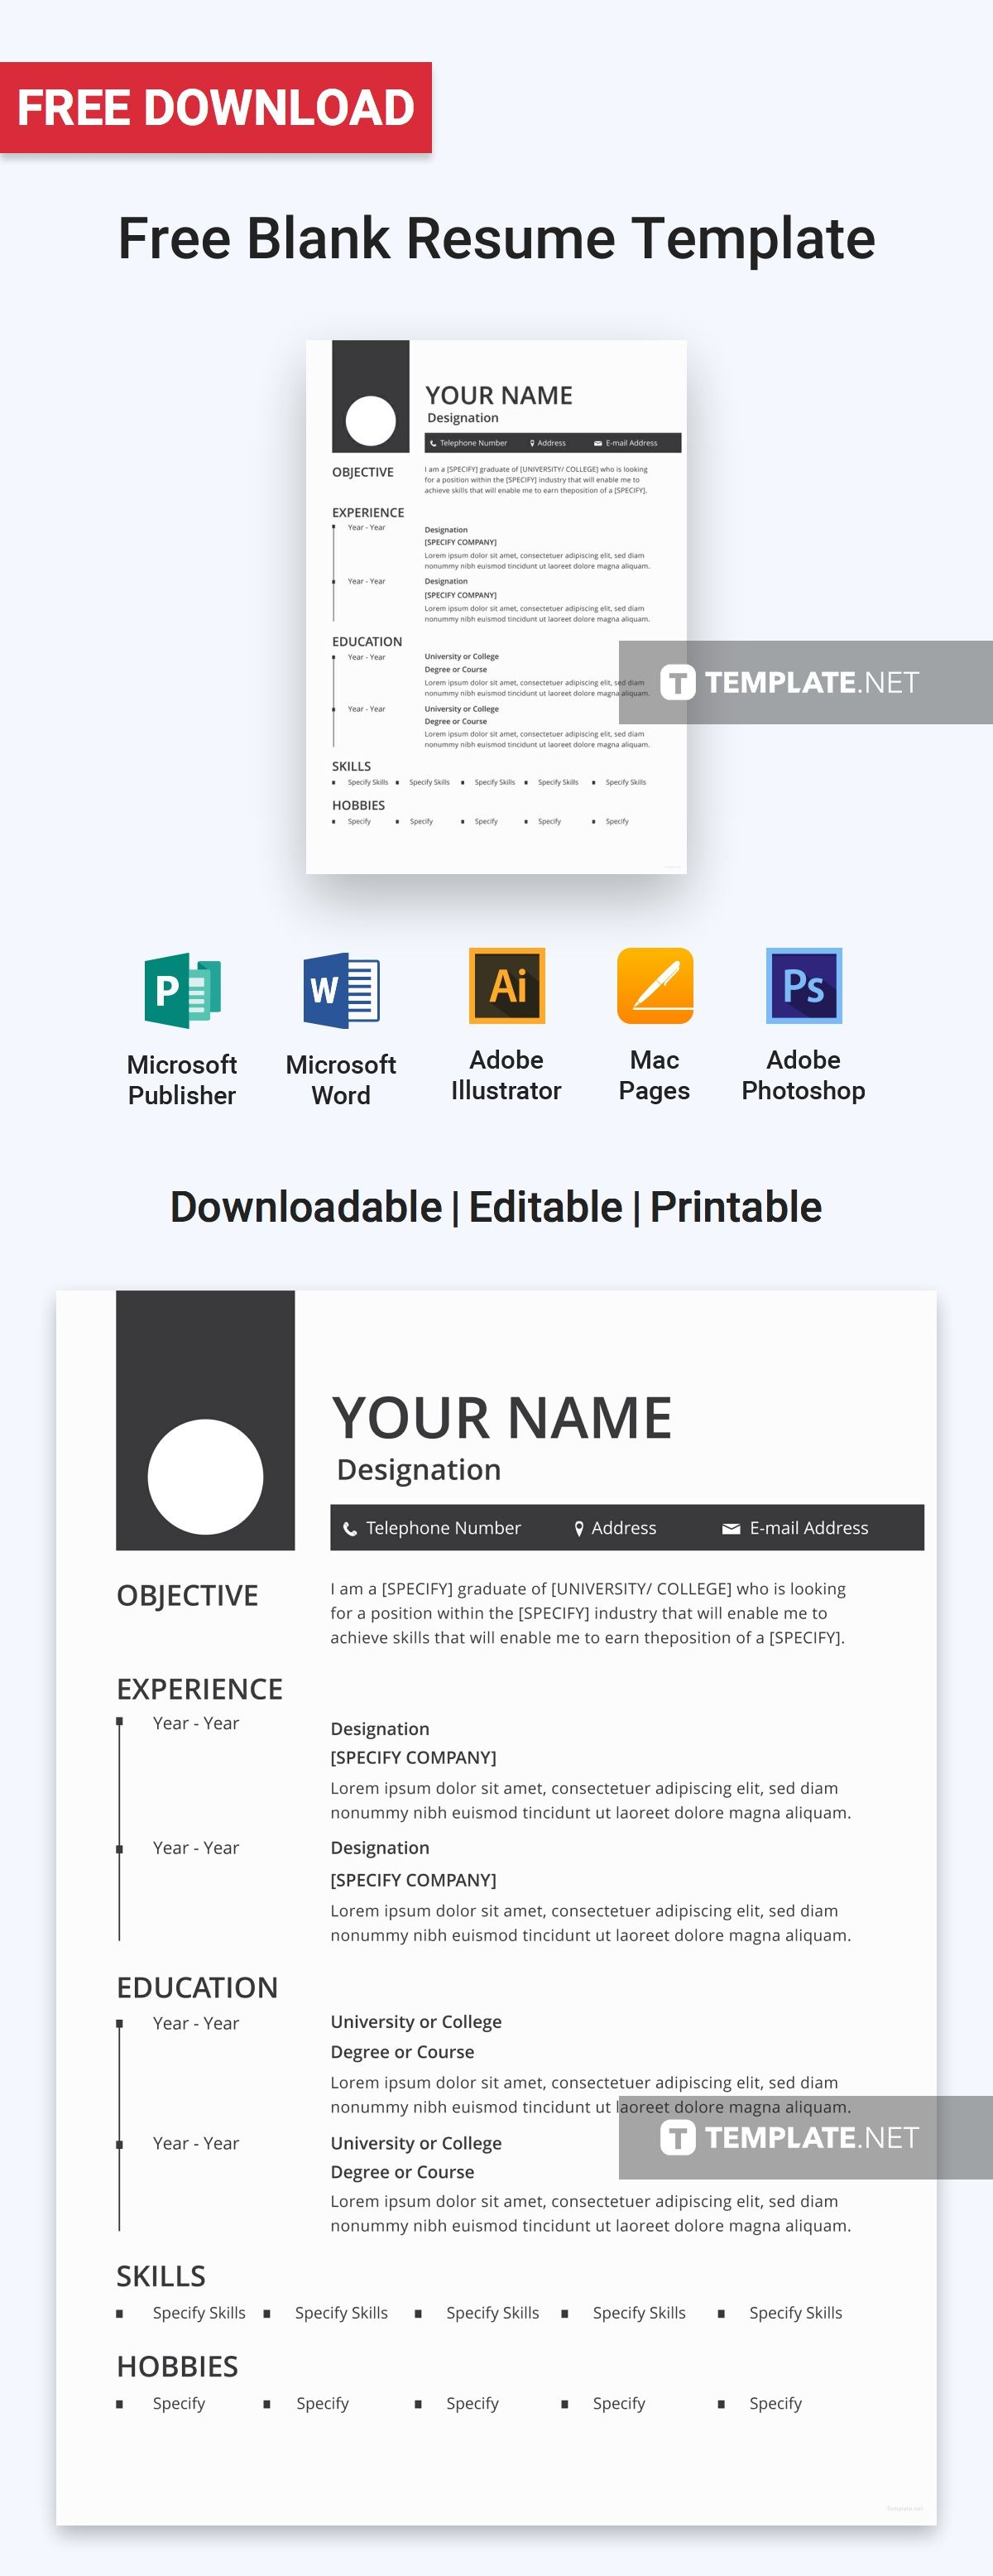 Blank Resume Free Blank Resume  Template Professional Resume Samples And .